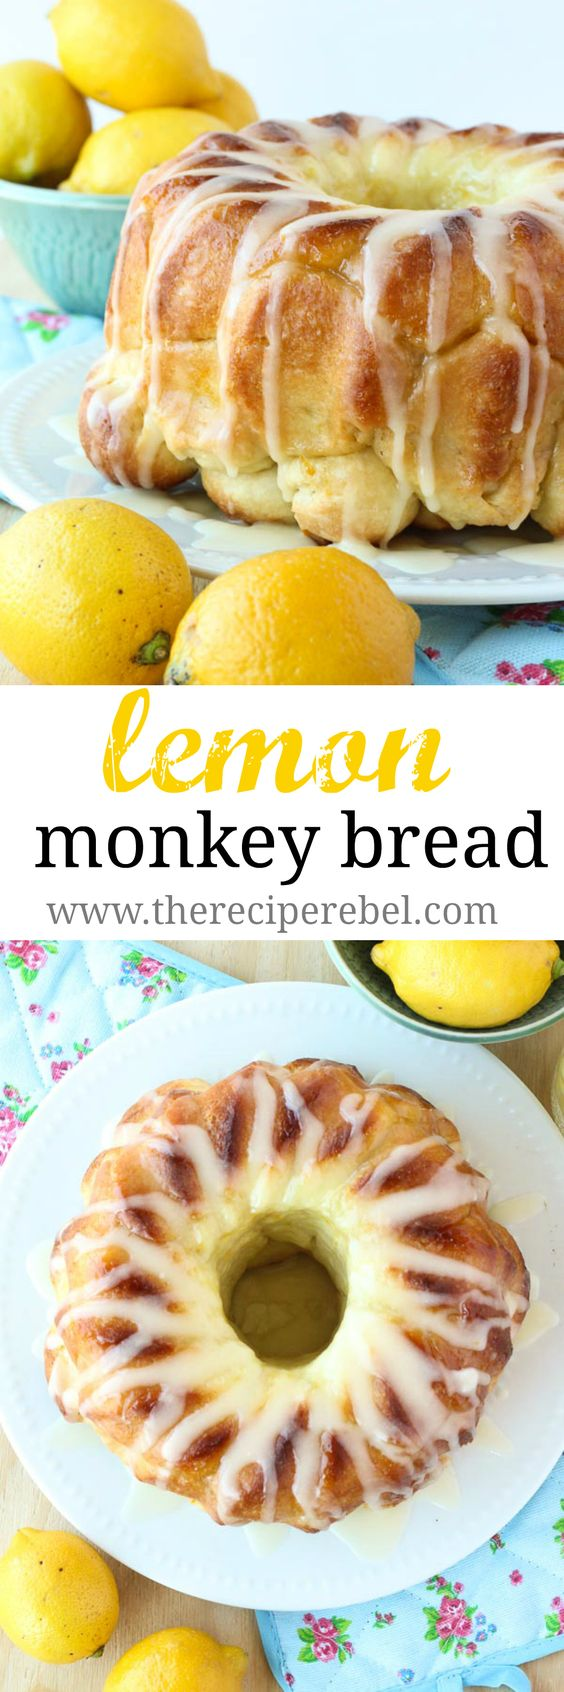 Glazed Lemon Monkey Bread Recipe via The Recipe Rebel - Buttery bun dough rolled in lemon sugar, baked, and covered in a thick lemon glaze. The perfect make ahead breakfast, brunch or dessert! The BEST Easy Lemon Desserts and Treats Recipes - Perfect For Easter, Mother's Day Brunch, Bridal or Baby Showers and Pretty Spring and Summer Holiday Party Refreshments! #lemondesserts #lemonrecipes #easylemonrecipes #lemon #lemontreats #easterdesserts #mothersdaydesserts #springdesserts #holidaydesserts #summerdesserts